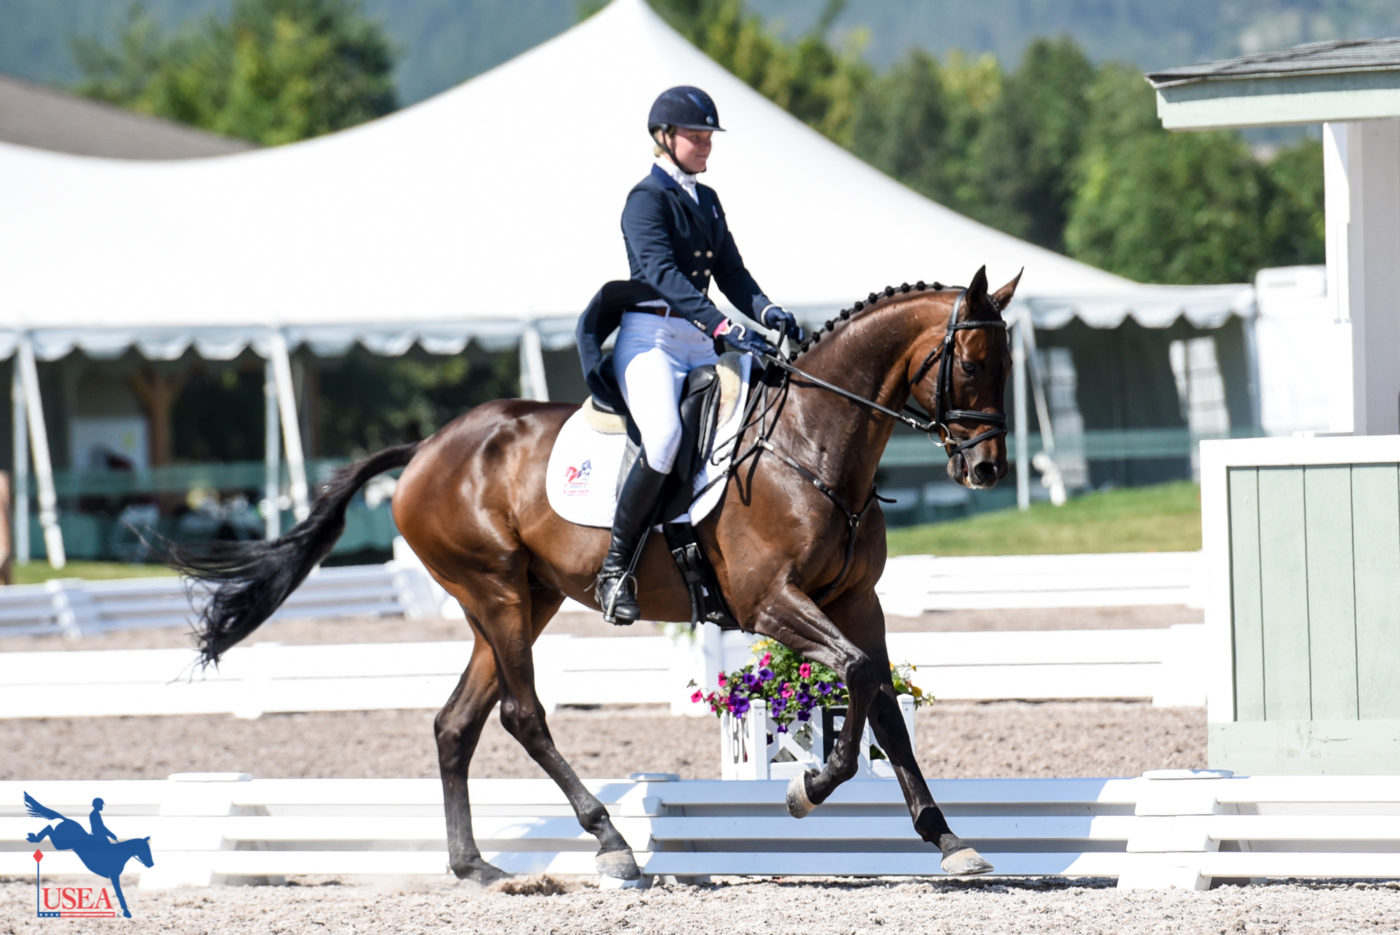 16th - Greta Schwickert and Matchless - 38.8